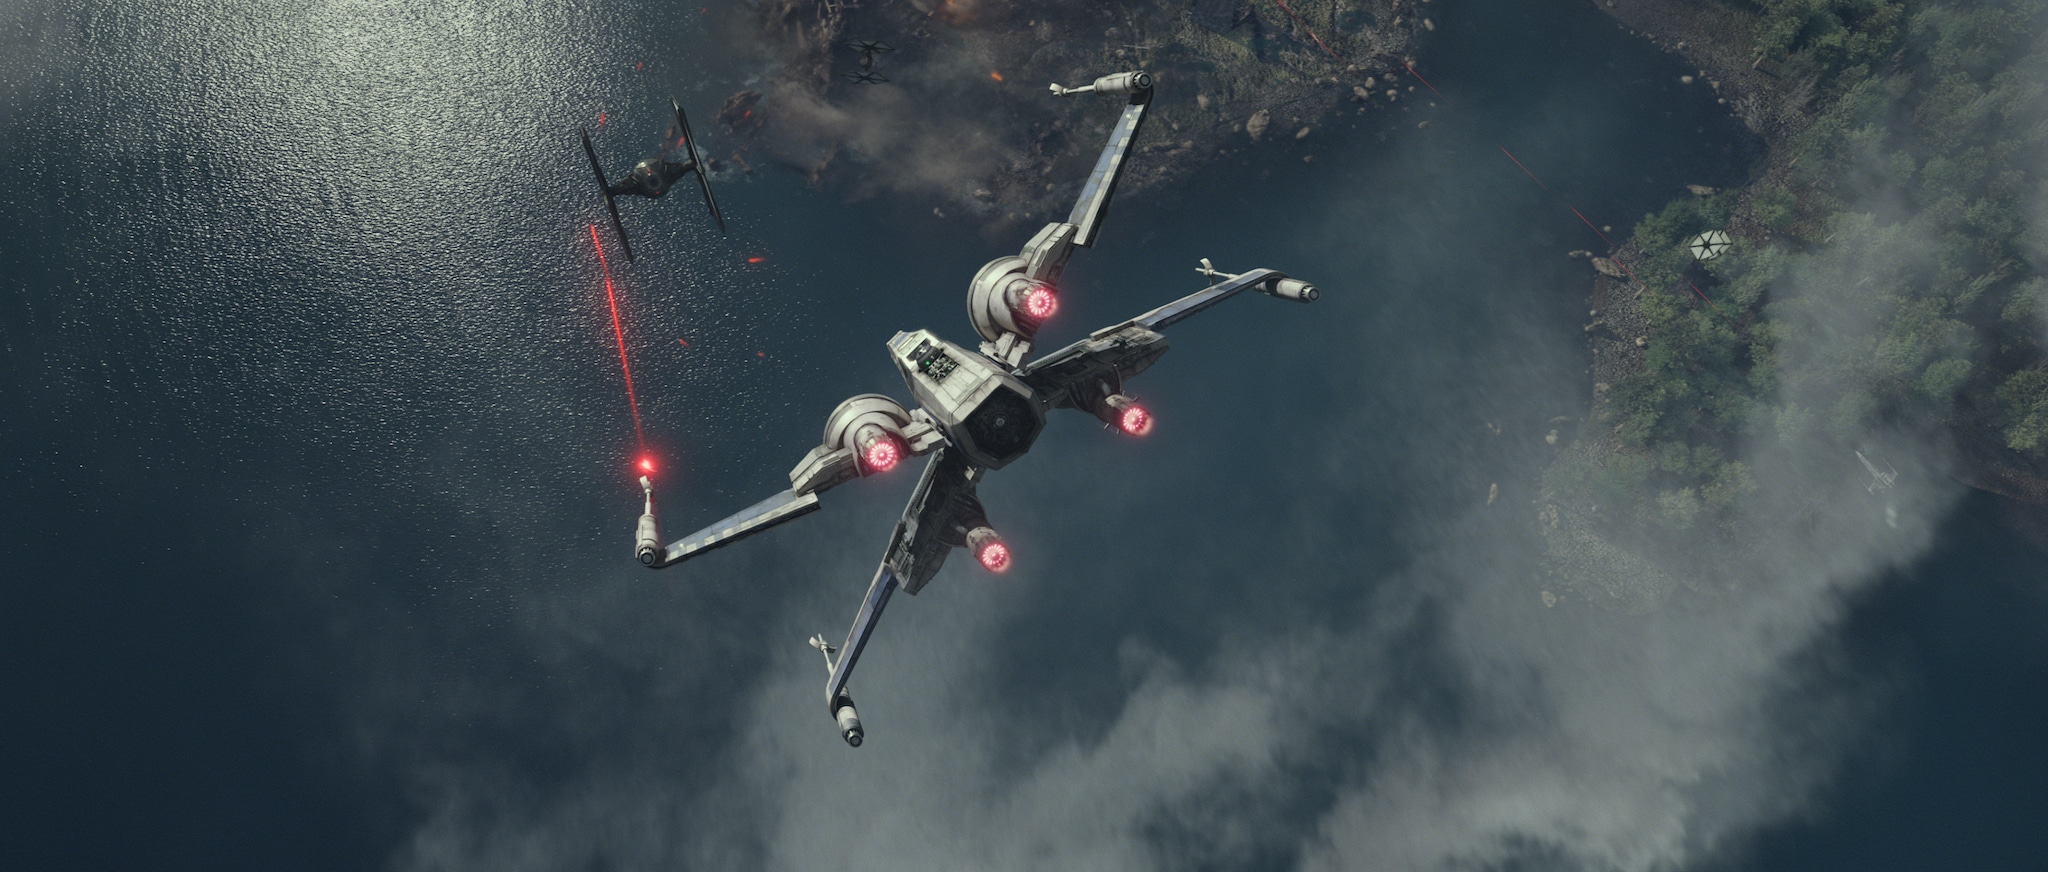 An X-wing (spacecraft) takes down a First Order TIE fighter.